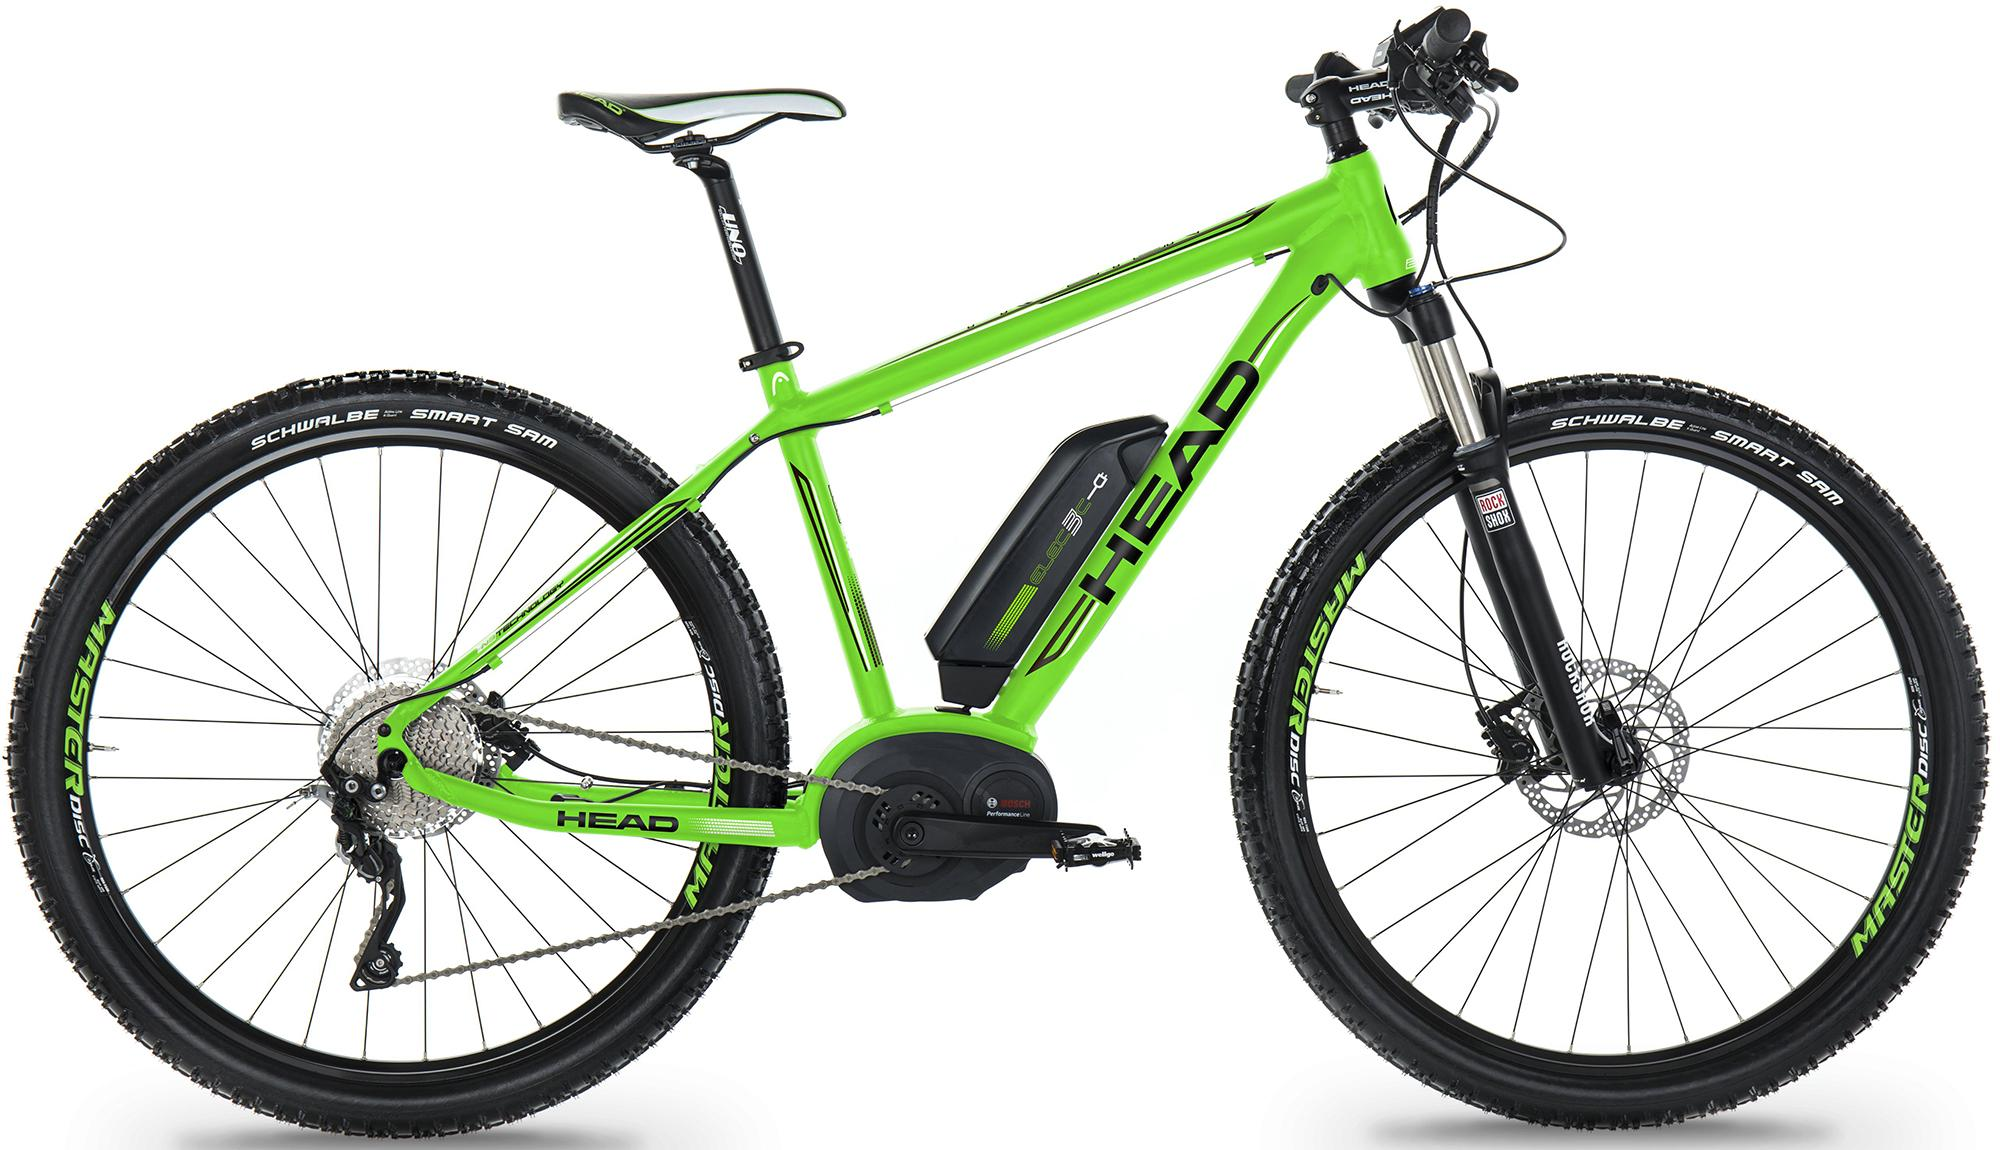 Head E-Bike Mountainbike, 29 Zoll, 10-Gang Shim...